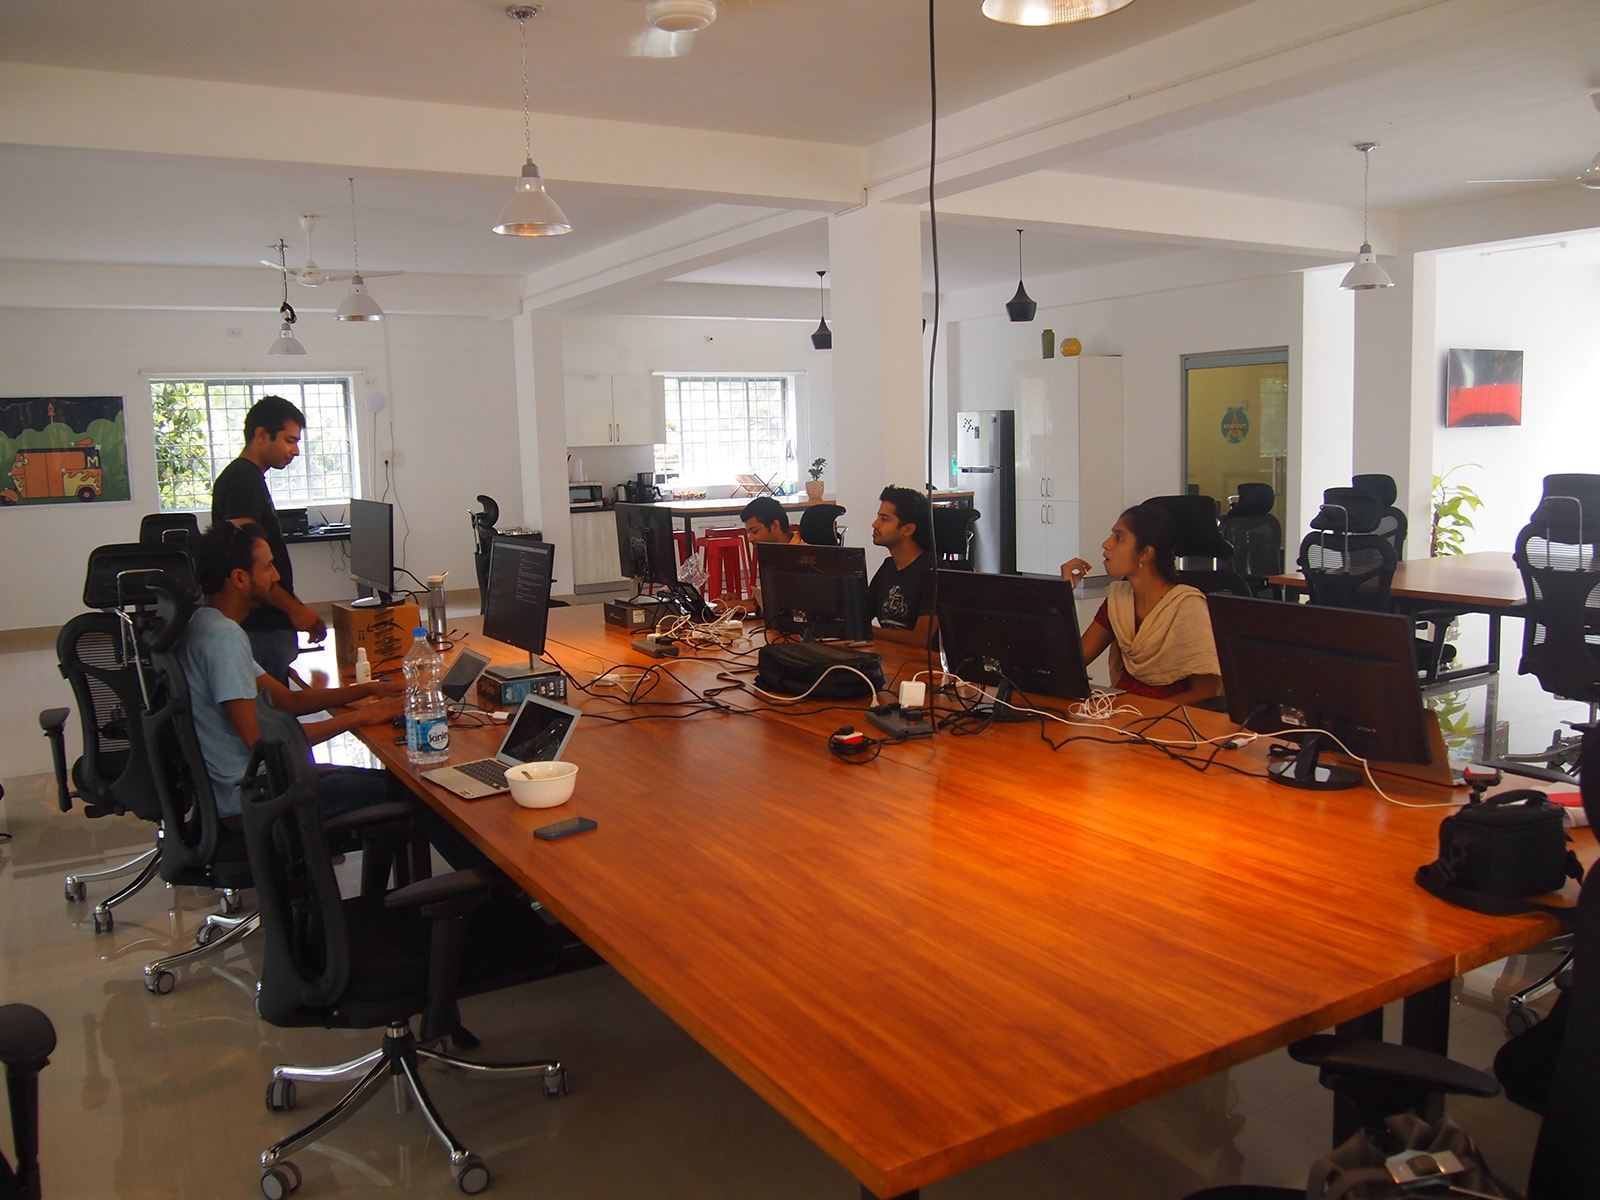 An Exclusive Look Inside Mapboxs New Office in India